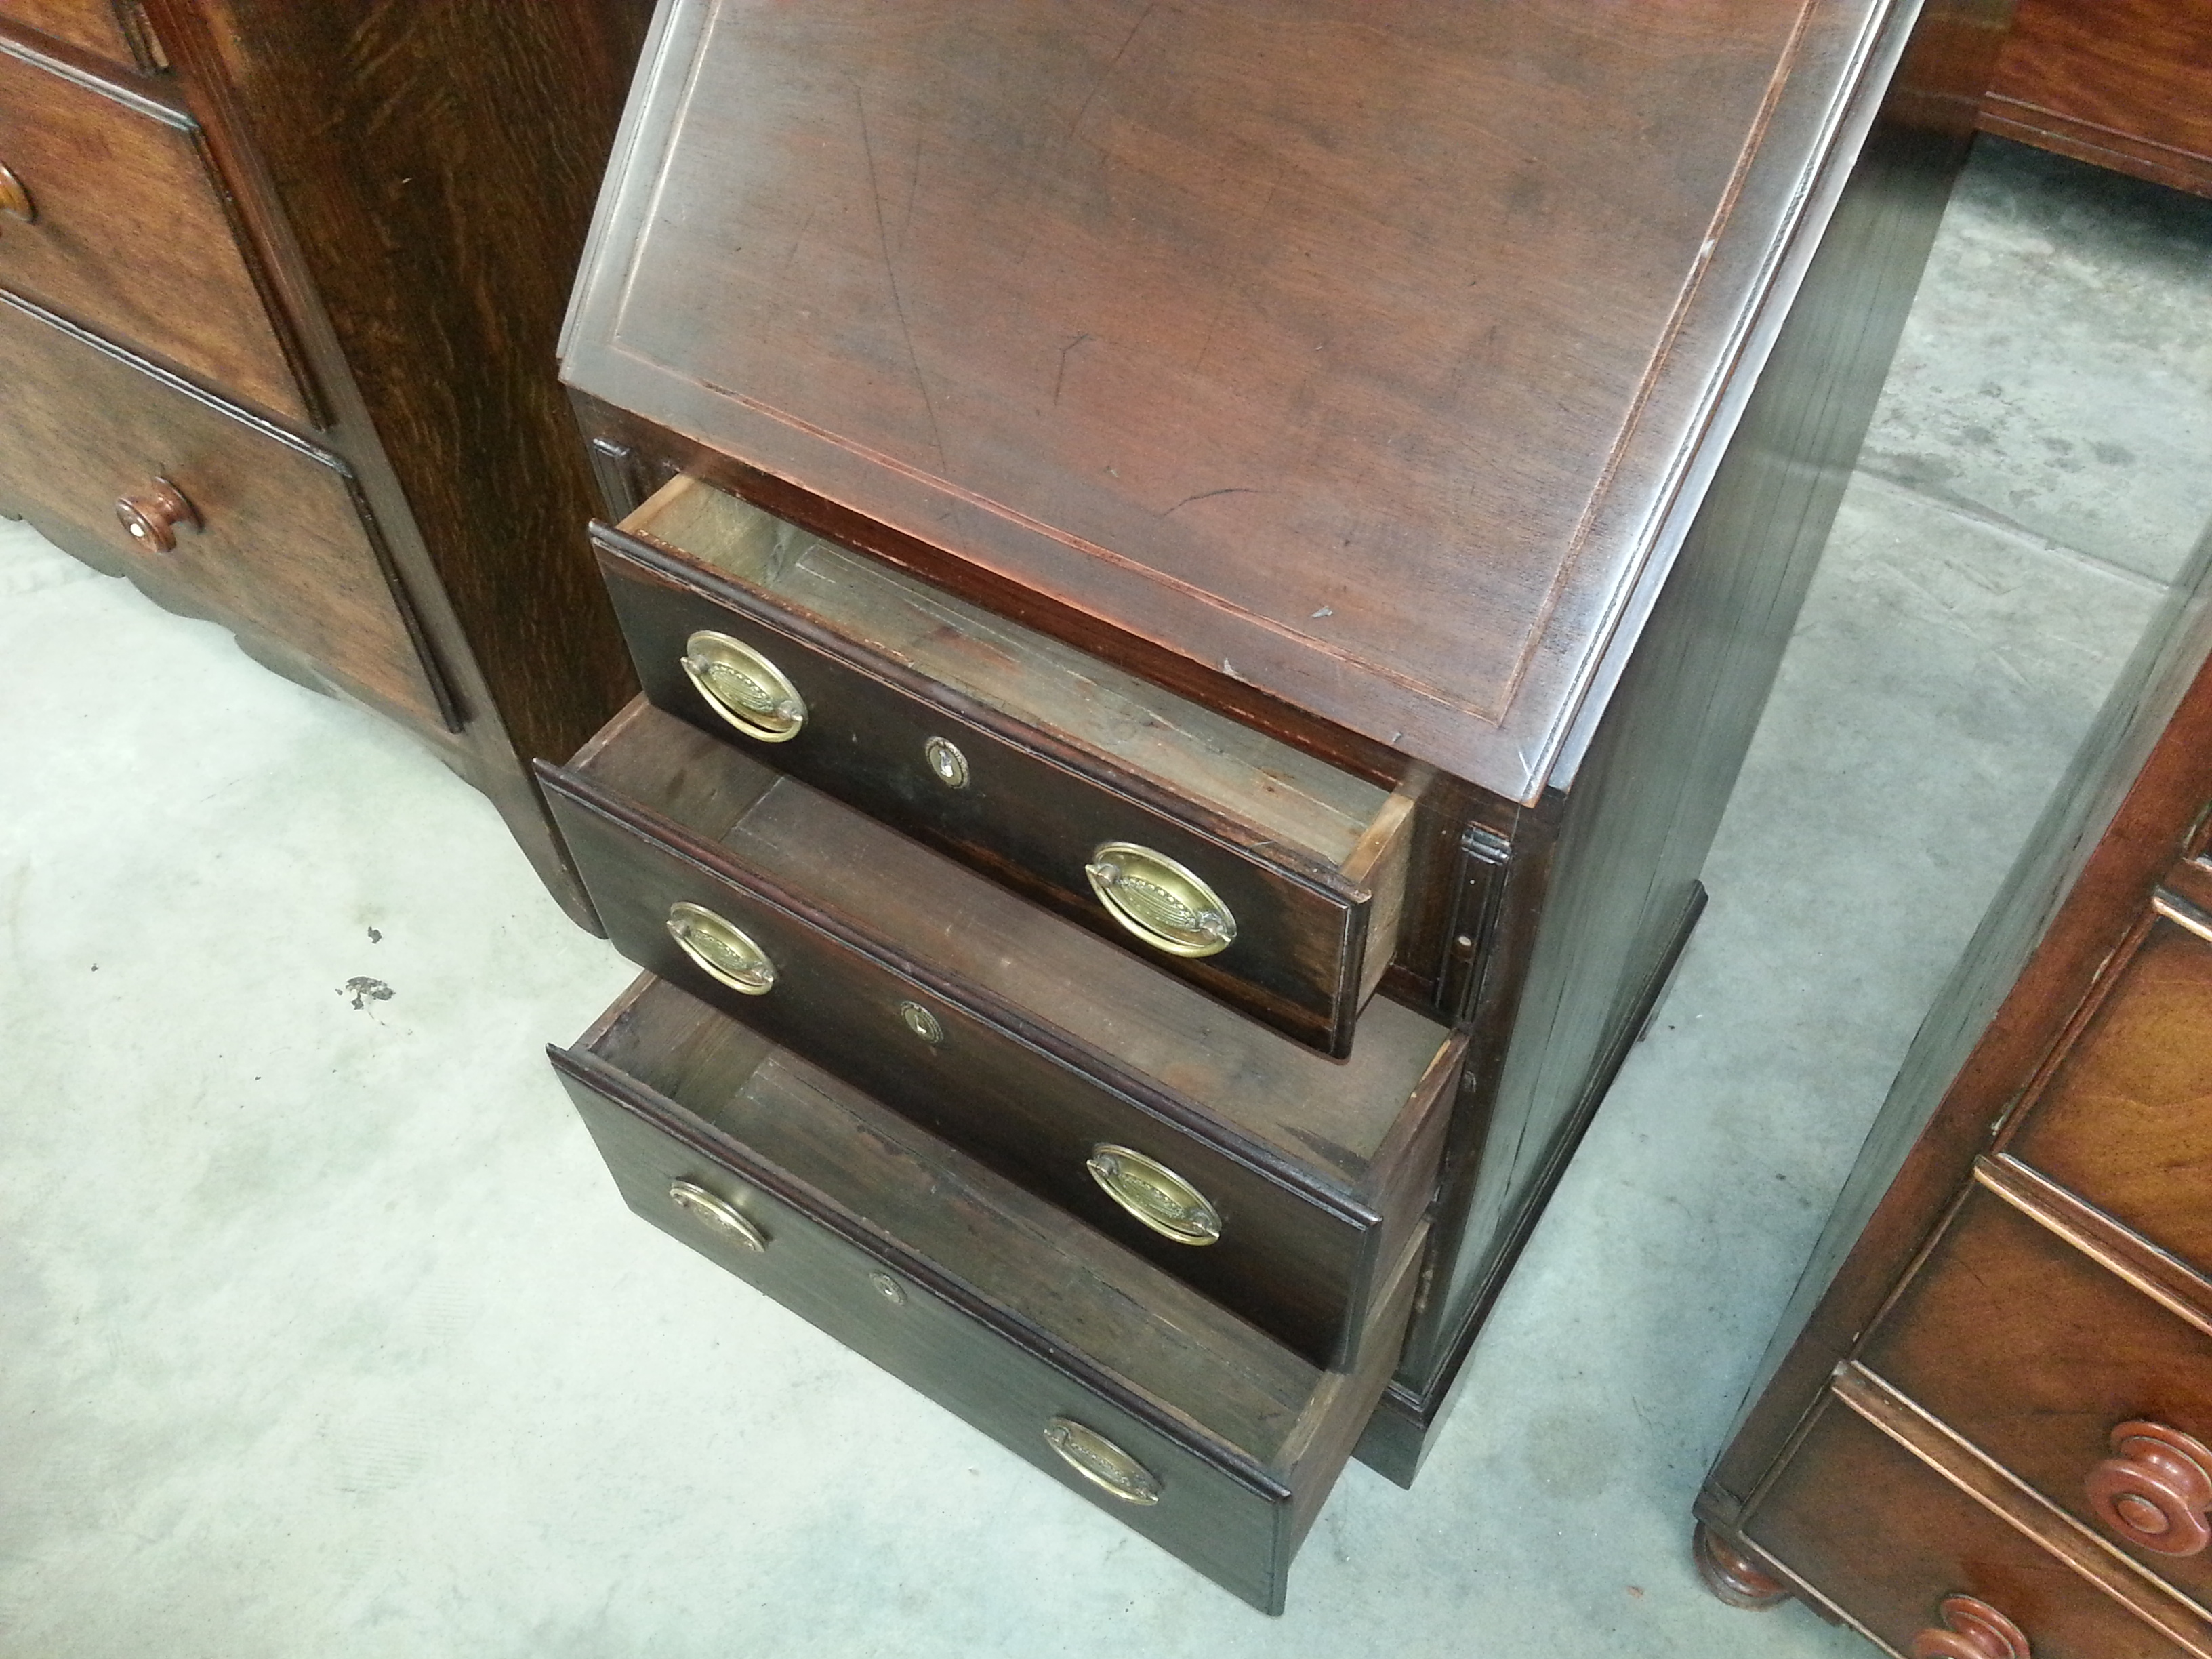 An English Victorian Mid 1800 S Gany Slant Top Desk 3 Main Drawers And 5 Inside Green Felt All Original Hardware Antique Furniture